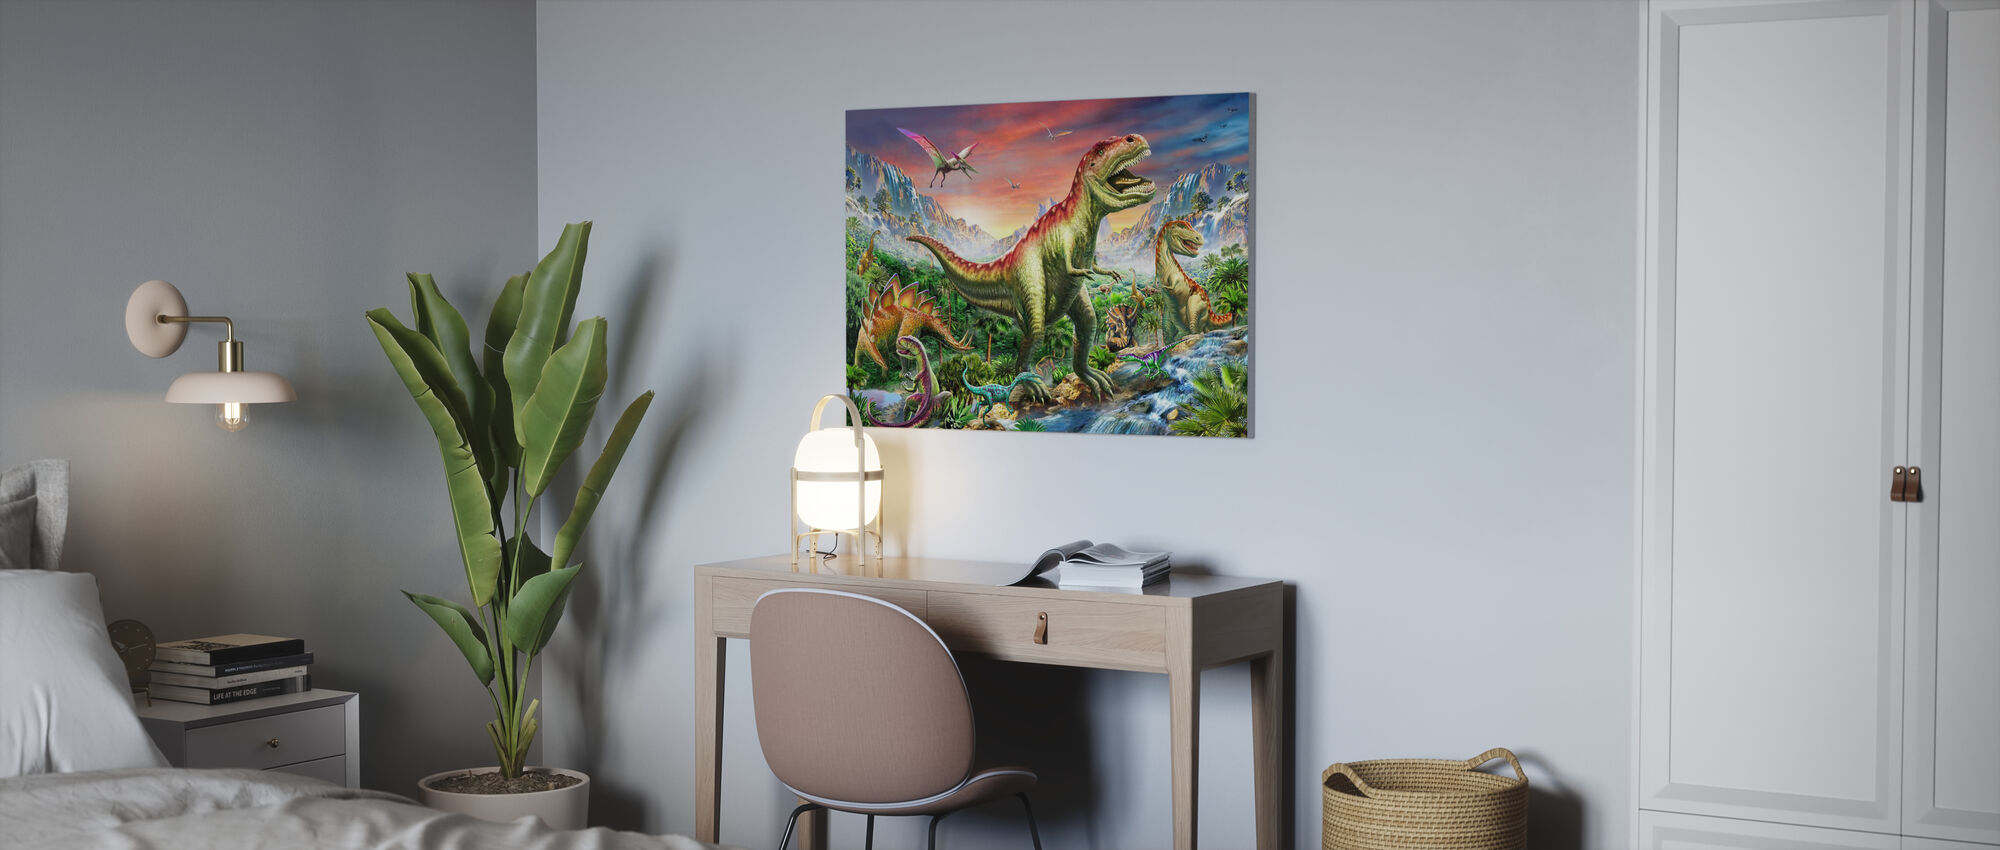 Jurassic Forest - Canvas print - Office